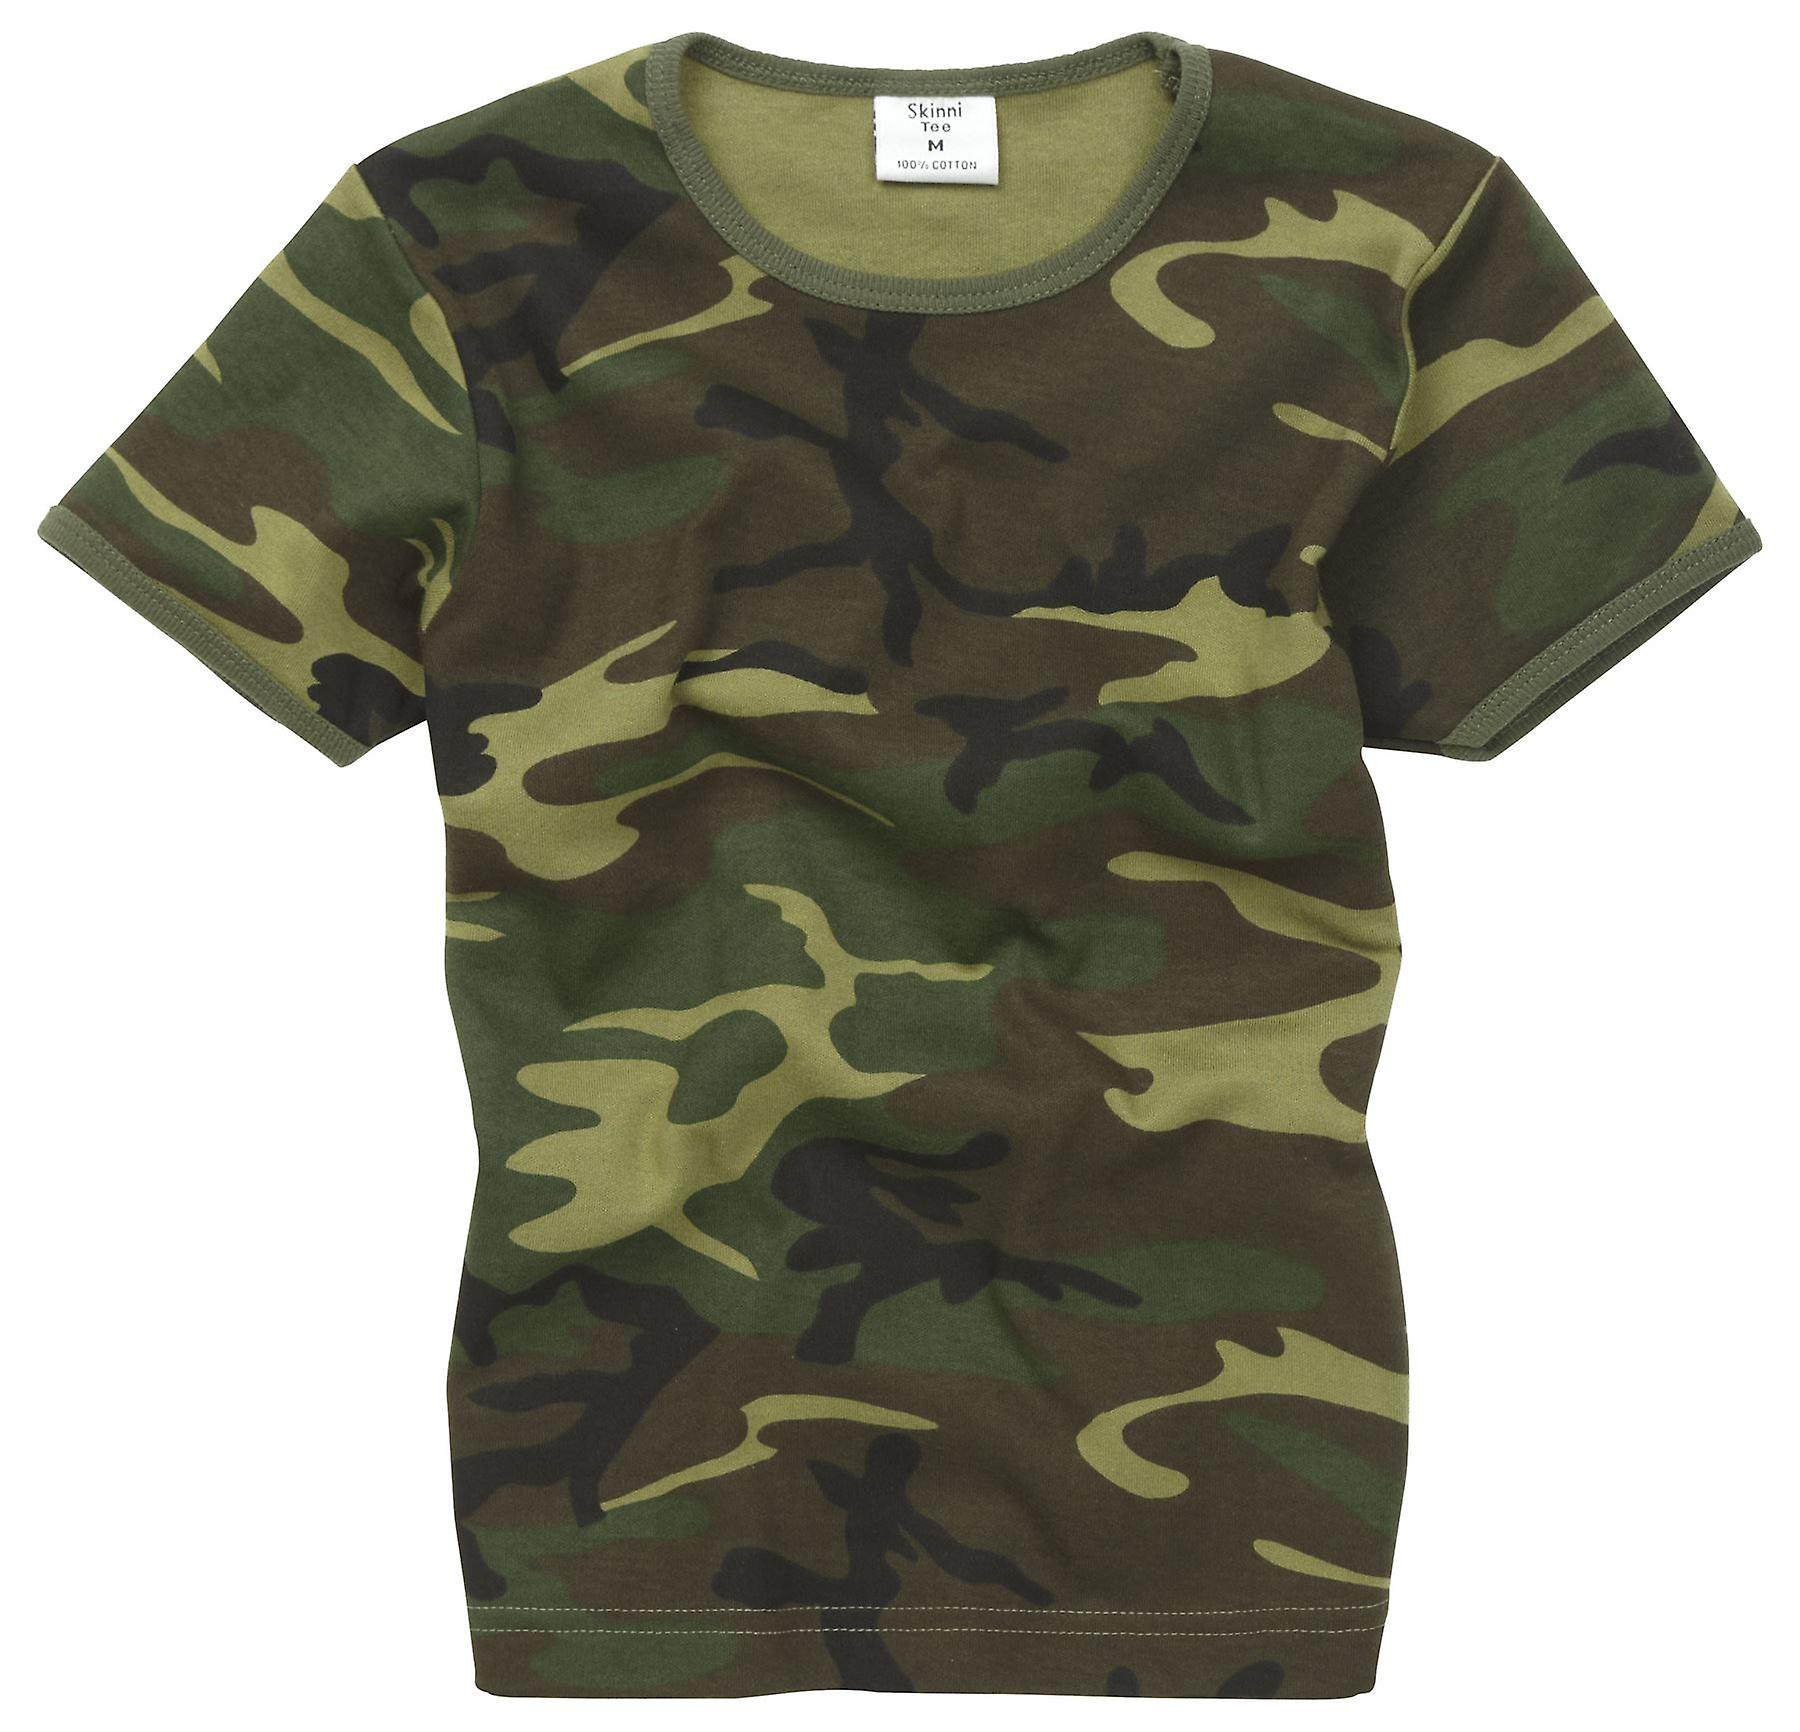 buy online 7e04d 43197 Kids New Combat Military Us Army Style T-Shirt